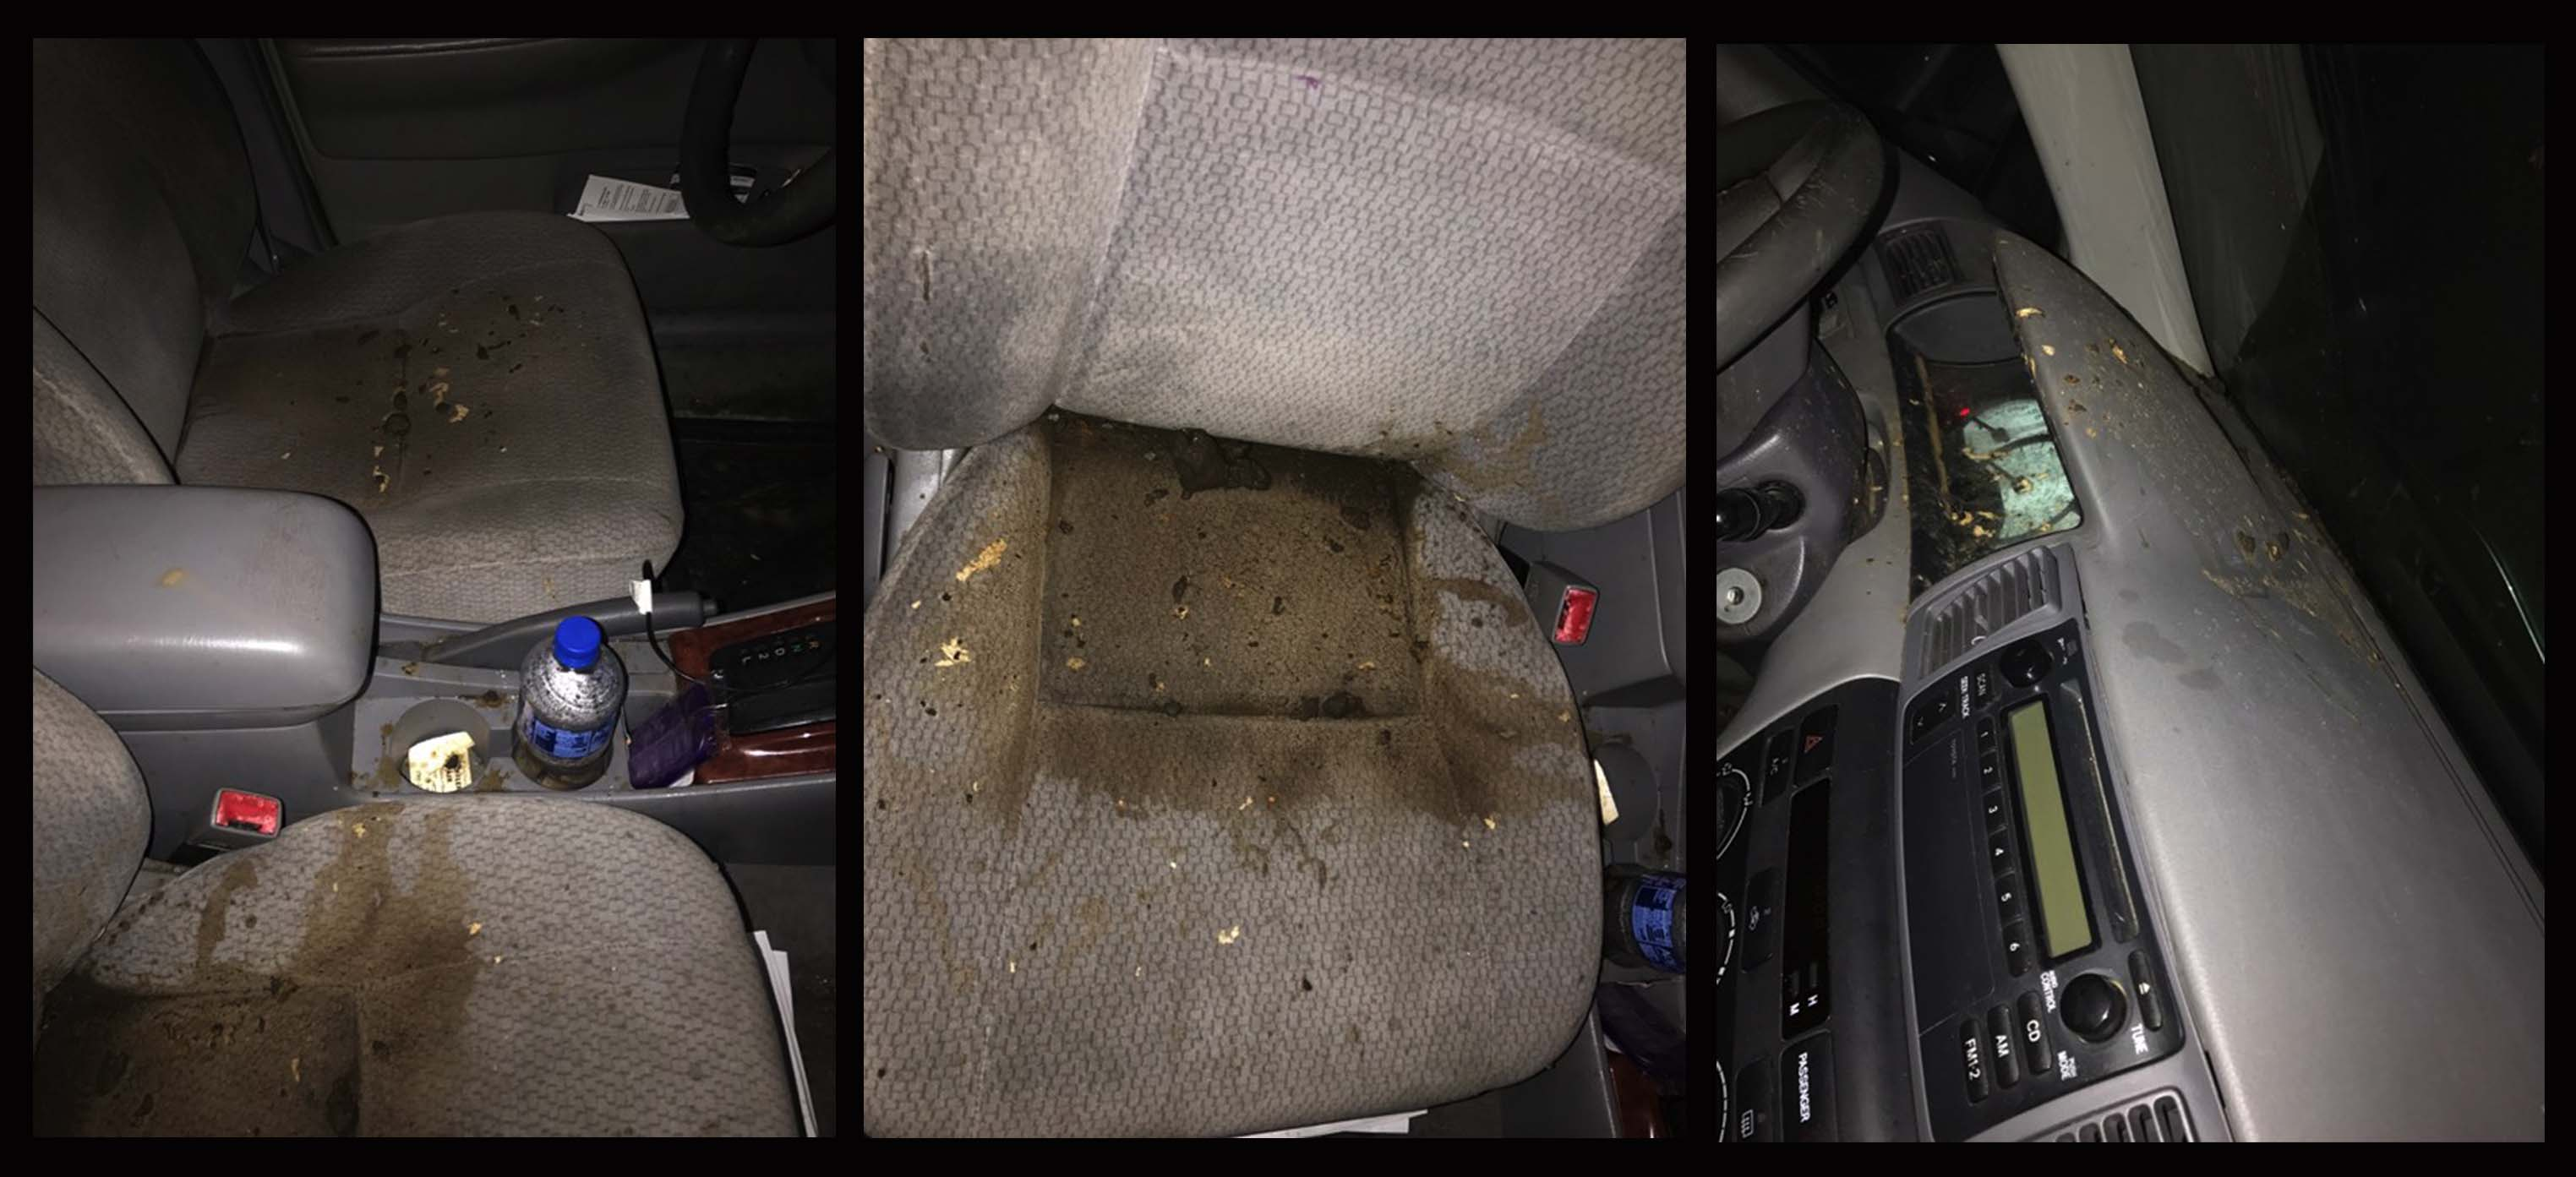 Inside of Yusuf Mohamed's car - photos provided by Hukun Abdullahi